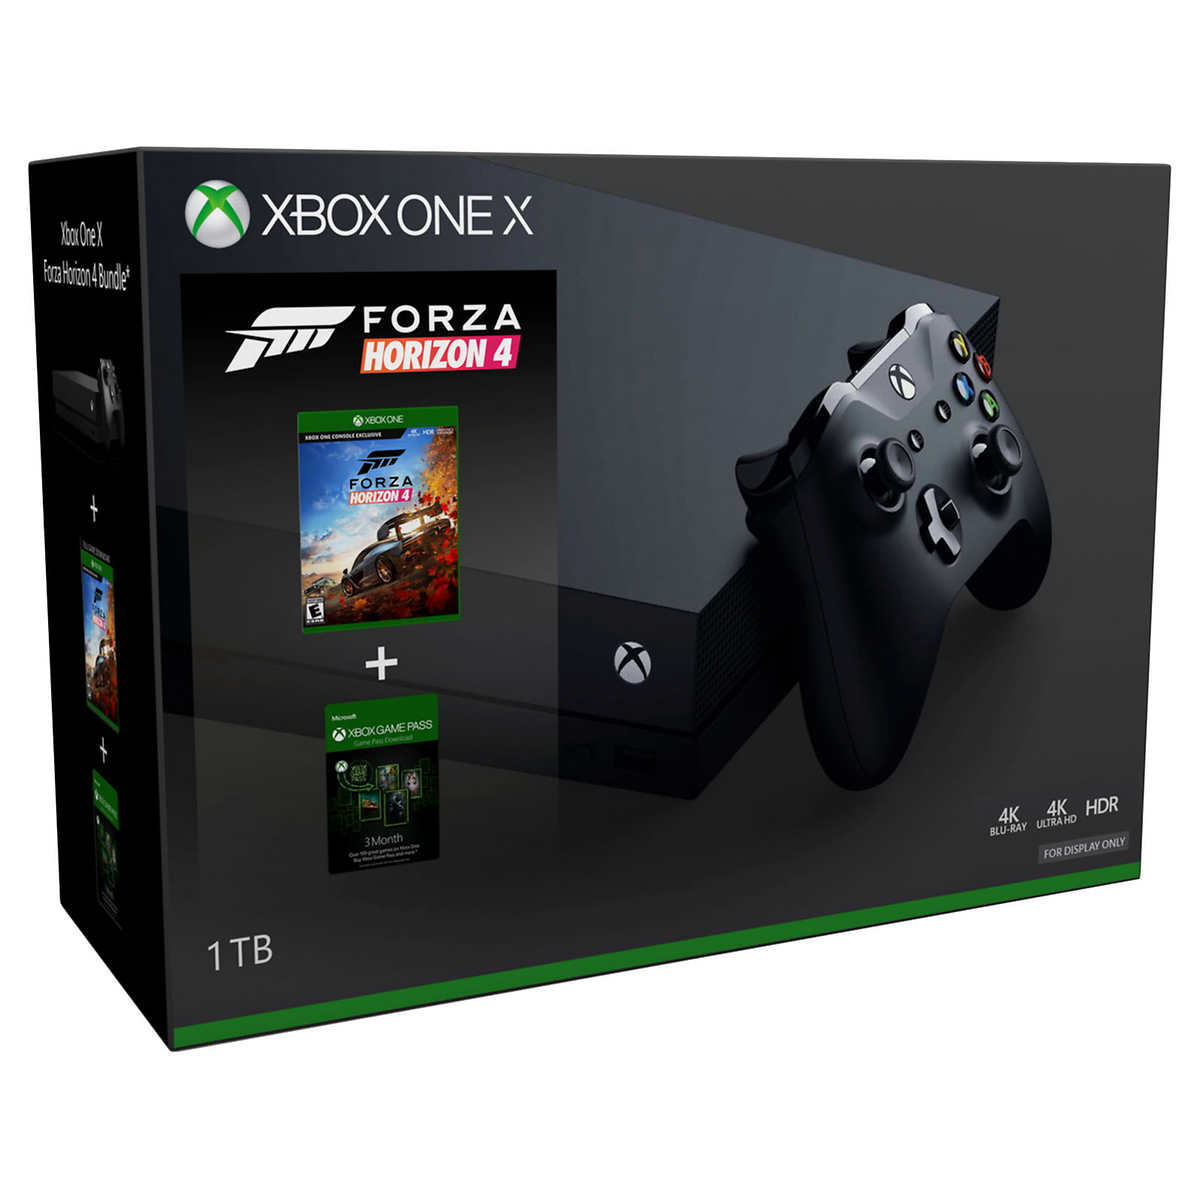 XBOX One X 1TB Forza Bundle with 3-Month Game Pass